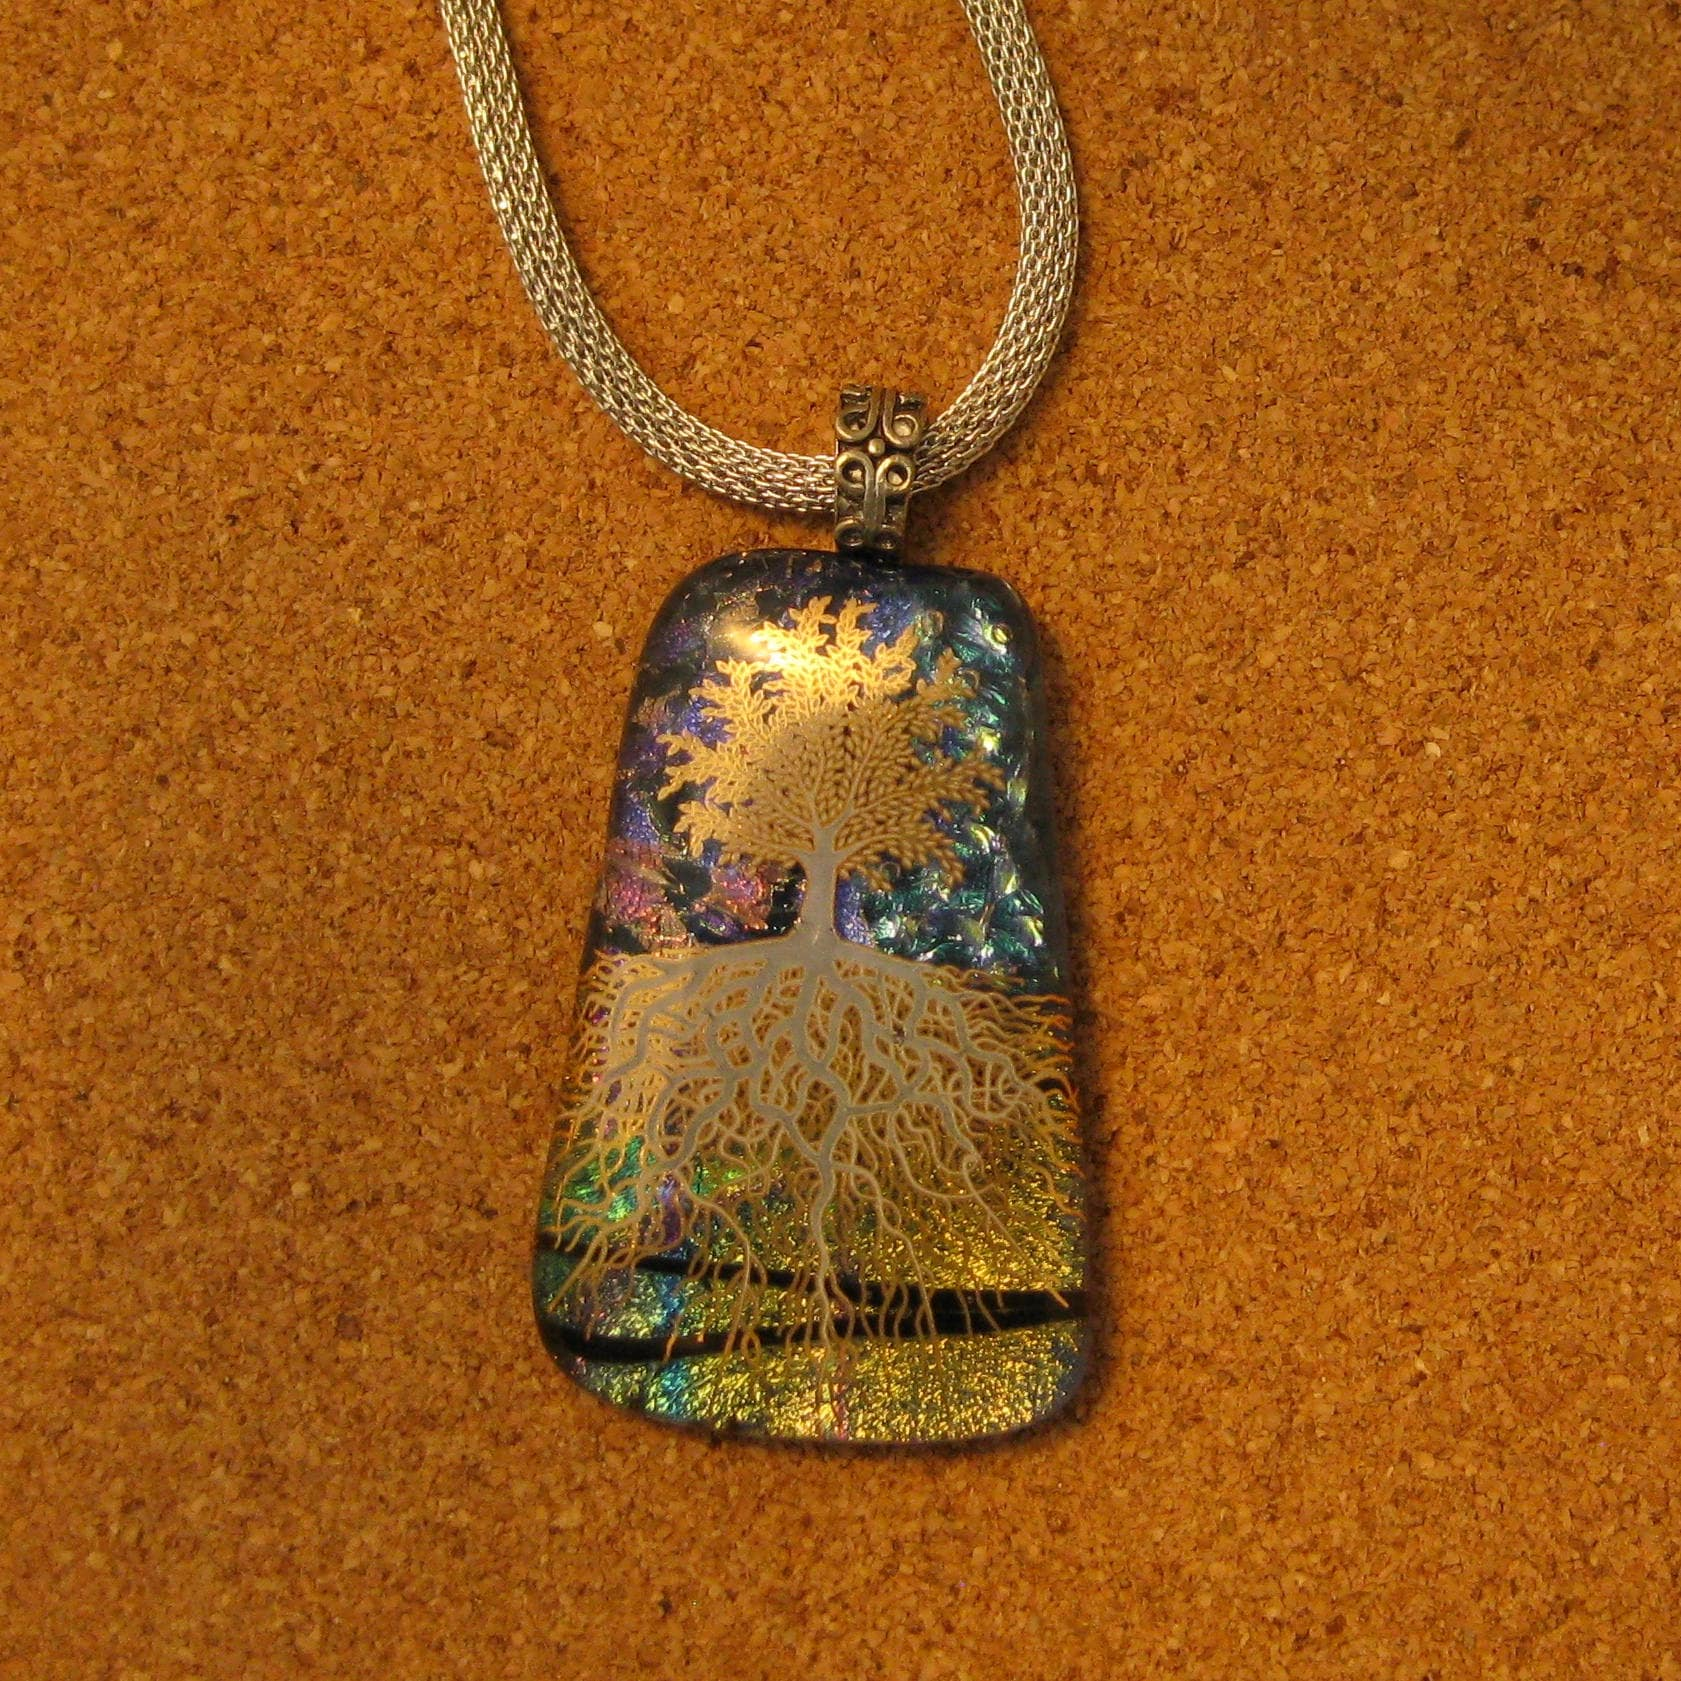 fun go and pendant fused a make event low at glass in fundraising all to challenge putting visarts price more the pendants fees four